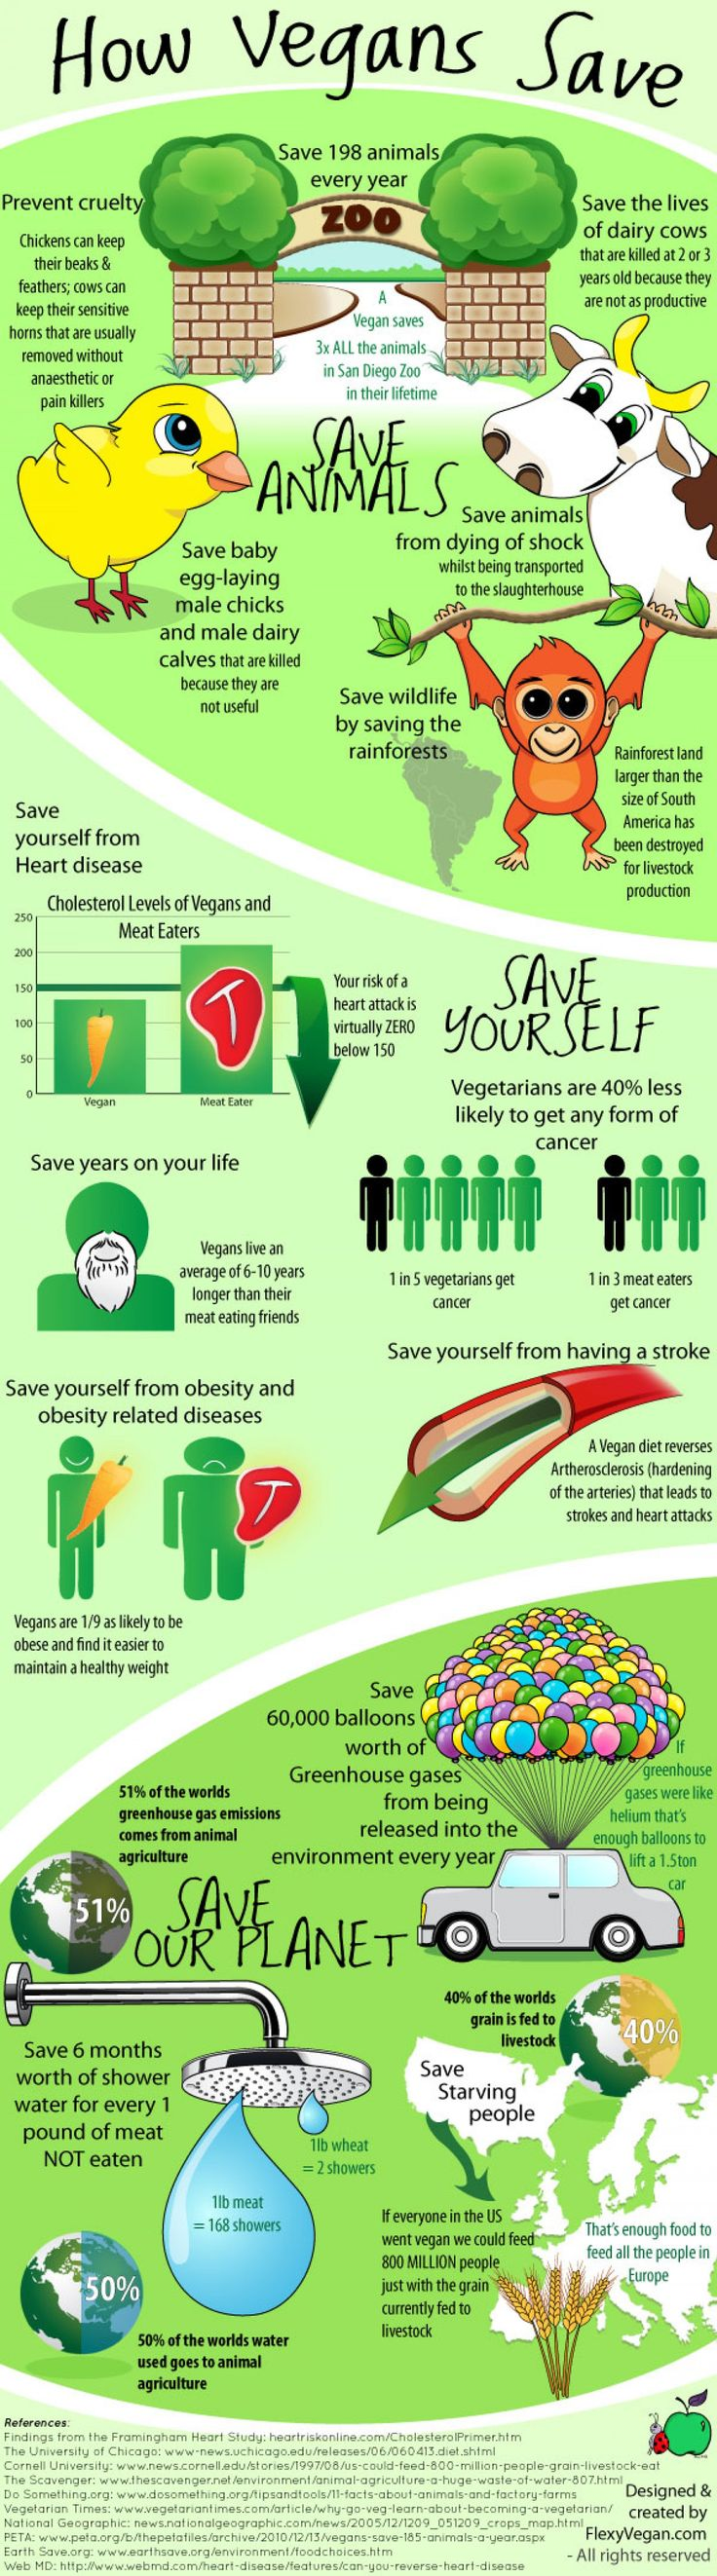 How Vegans Save Infographic